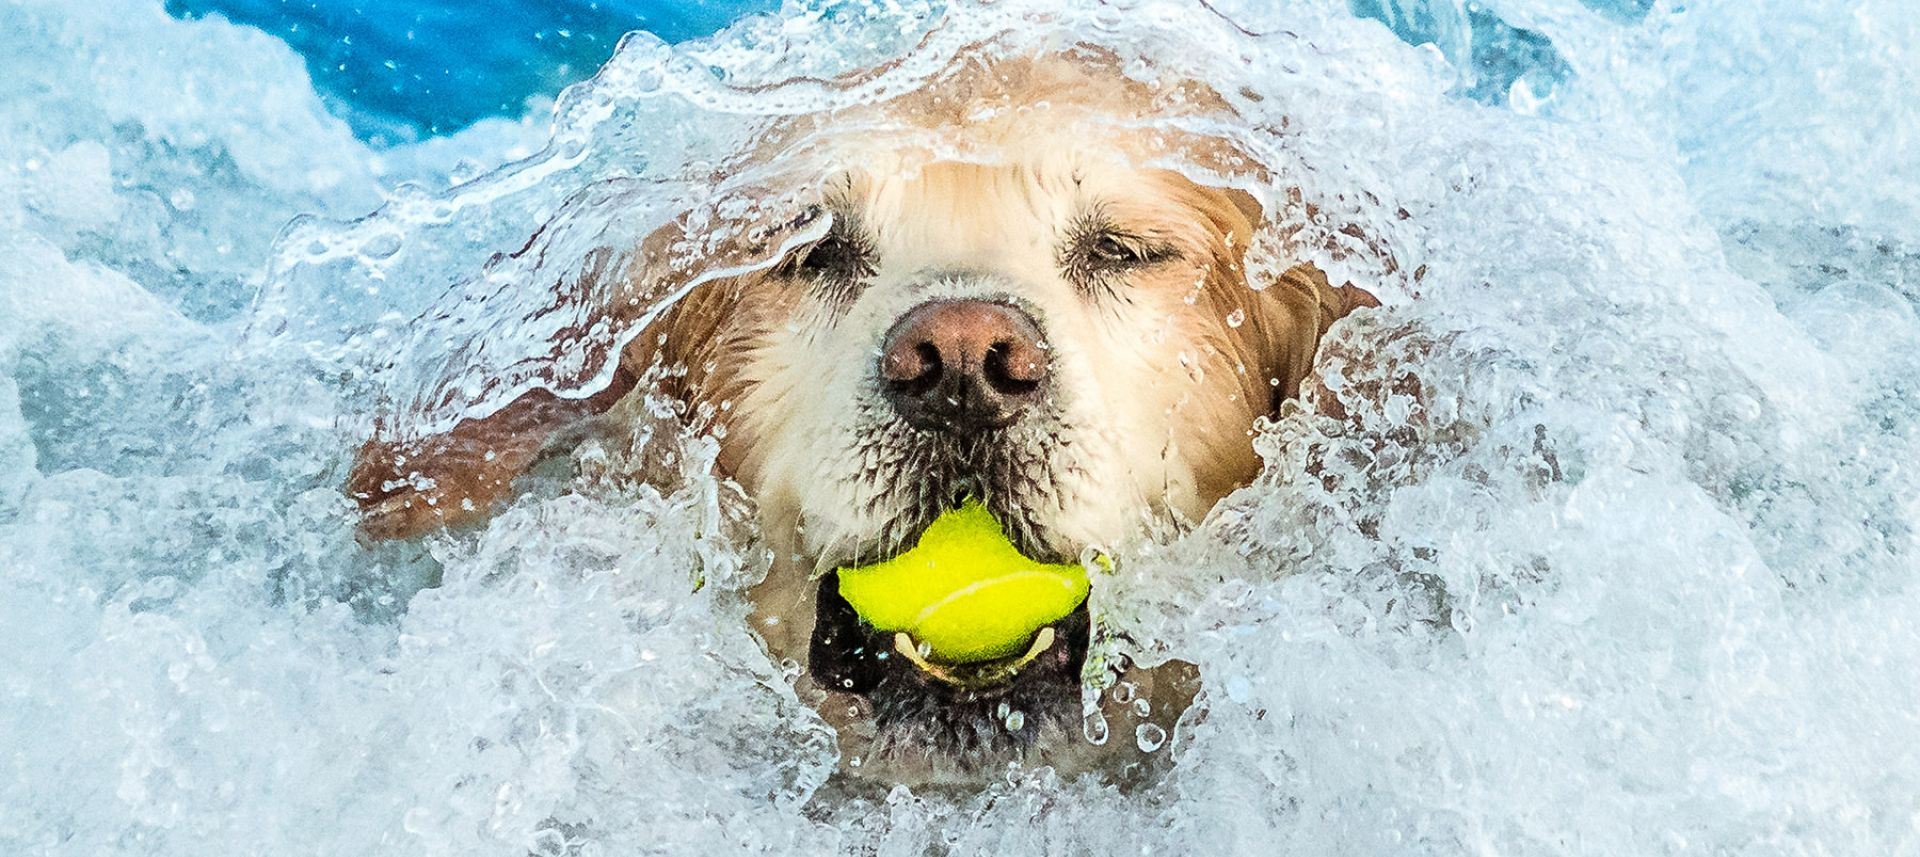 a dog swimming against the waves with a tennis ball in its mouth